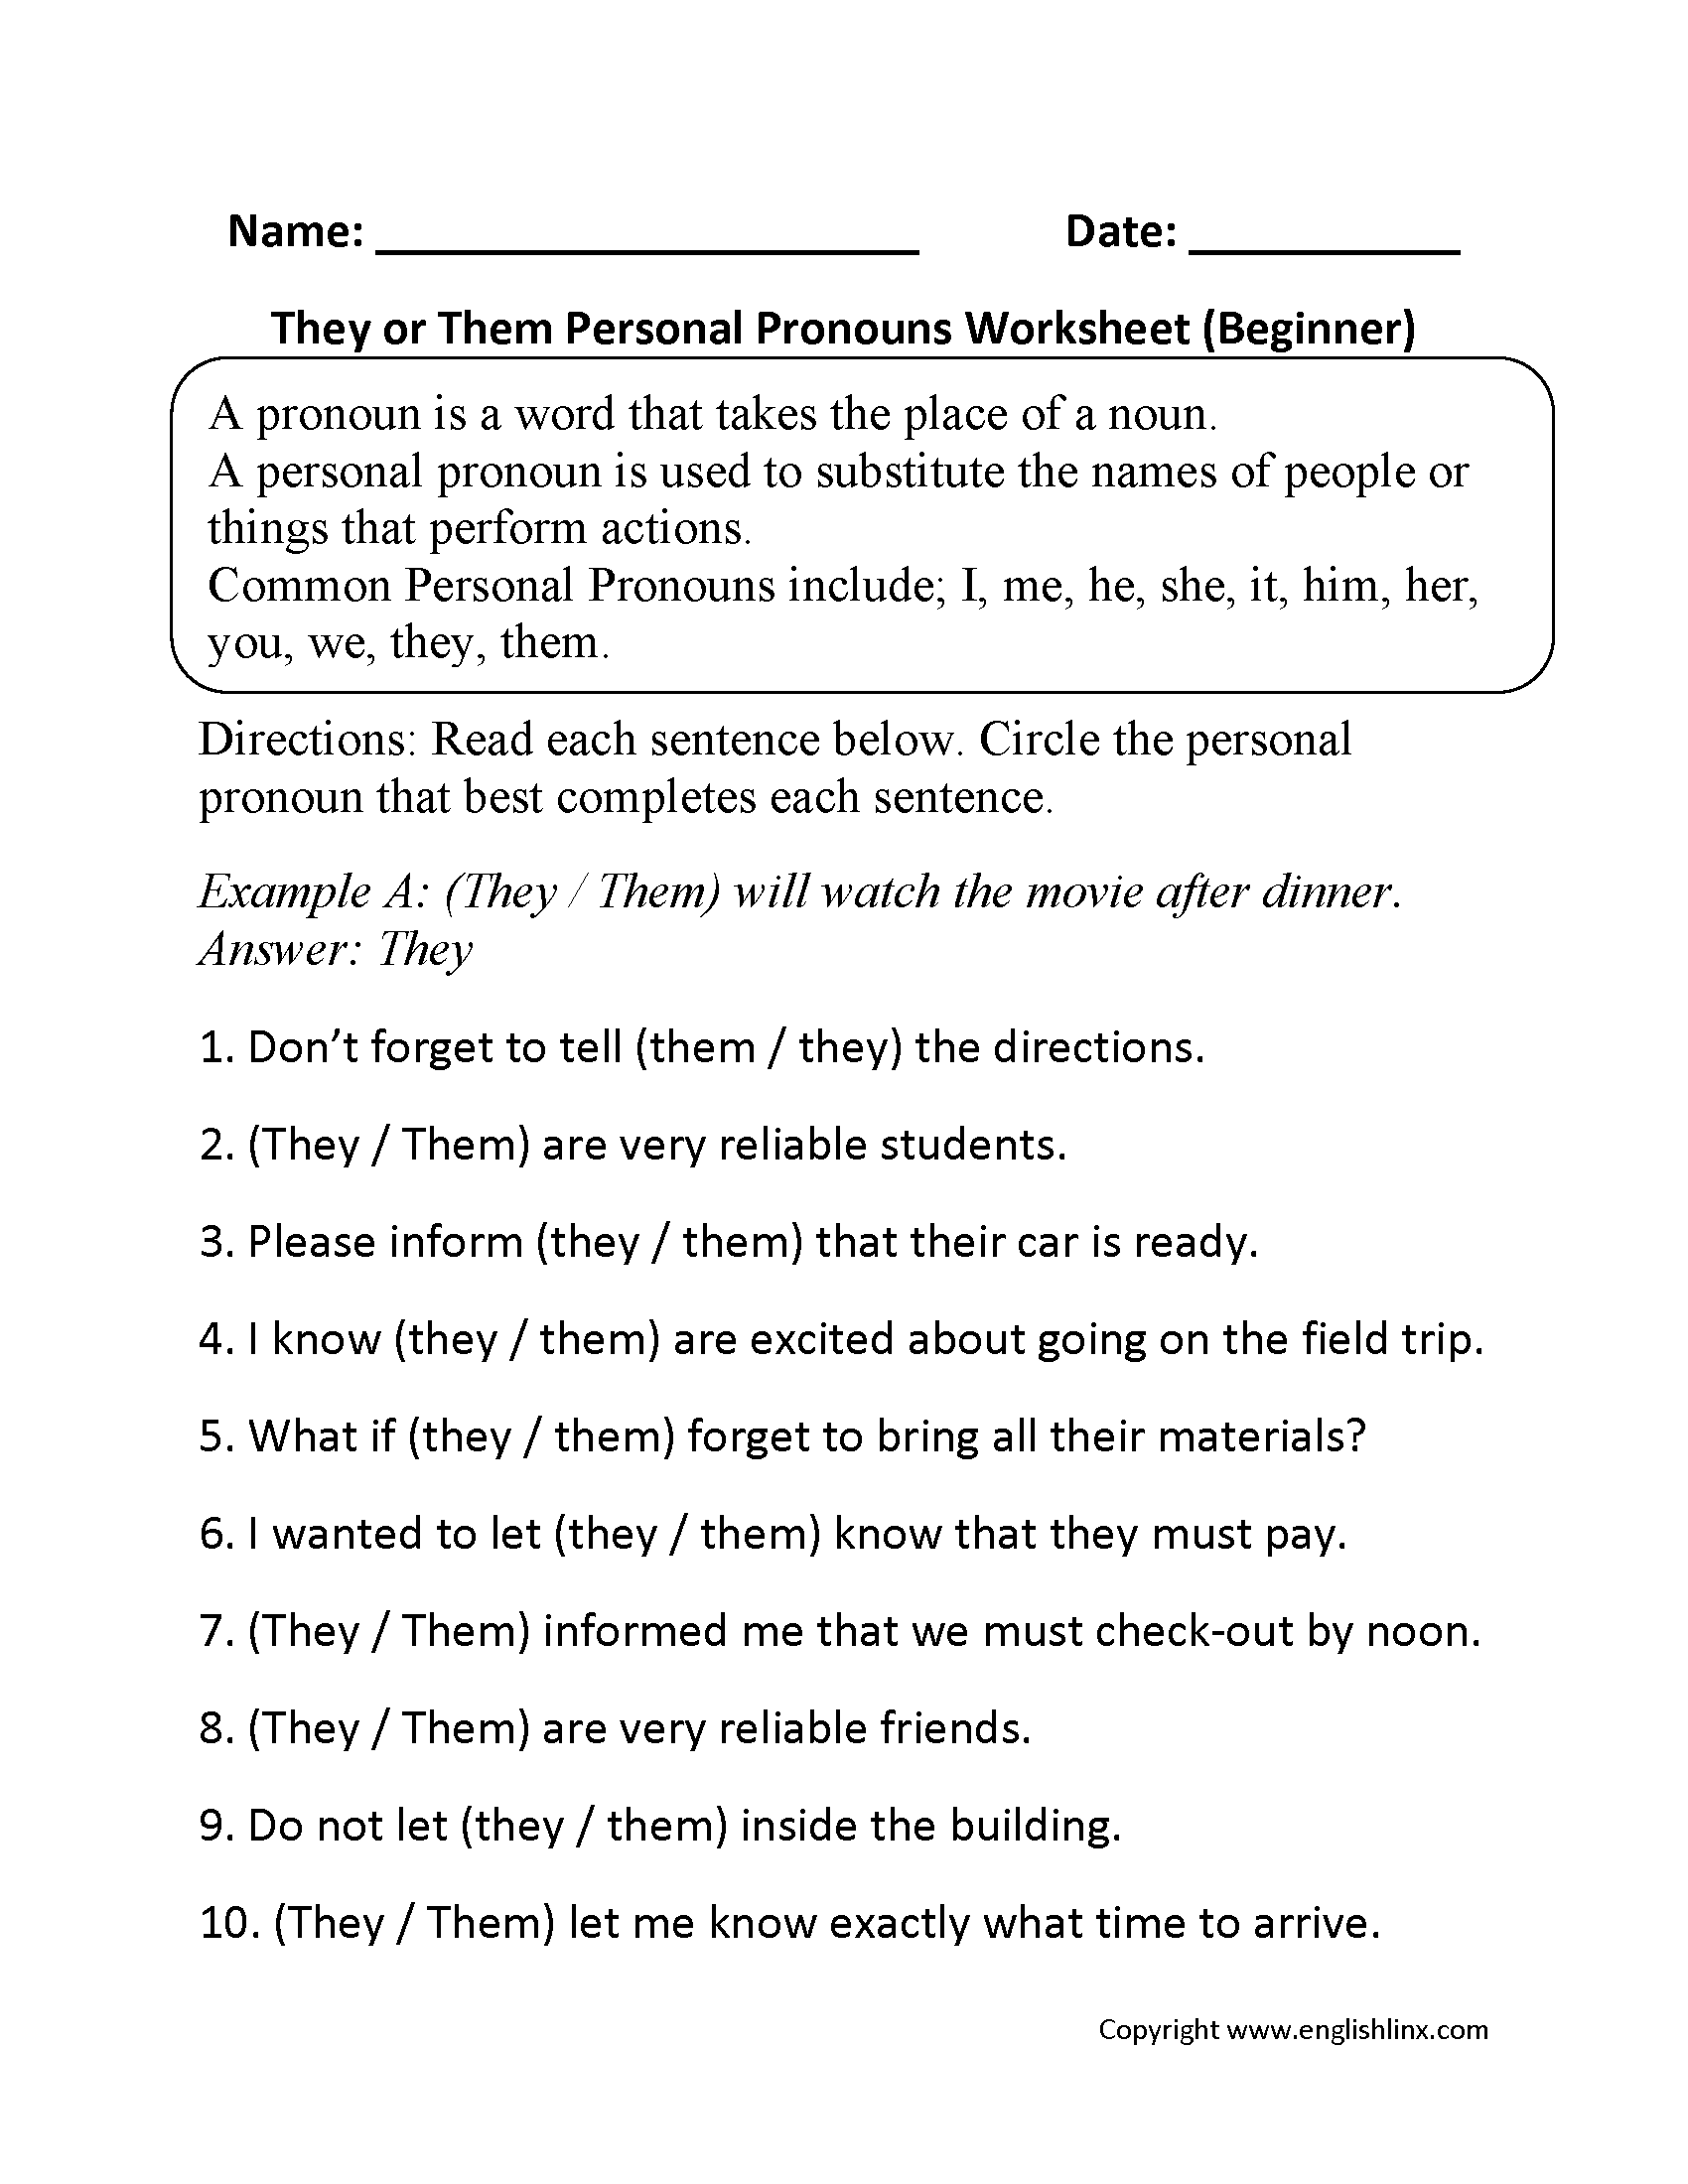 worksheet Subject Pronouns In Spanish Worksheet pronouns worksheets personal beginner